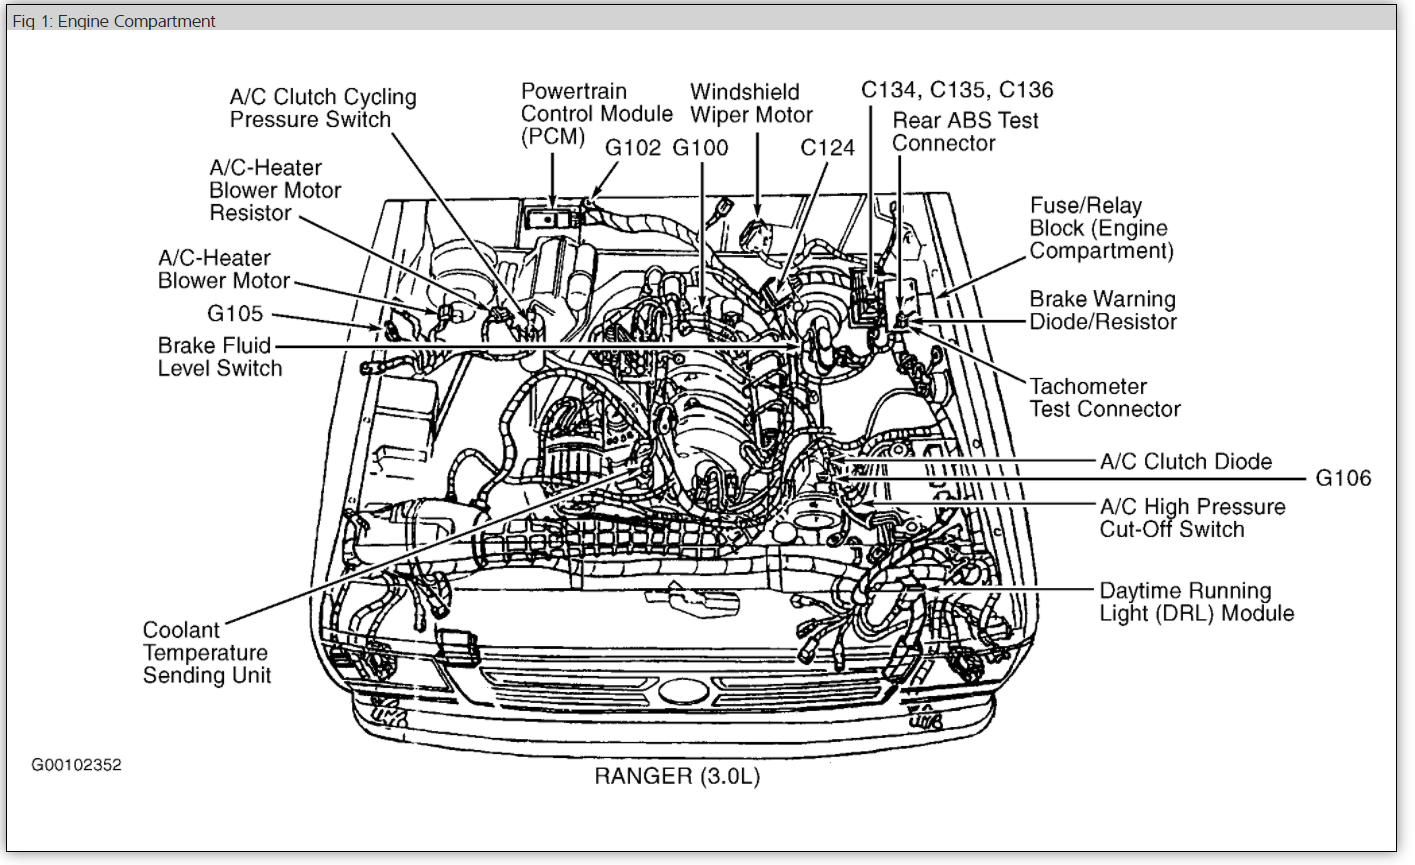 bus engine compartment diagram 1997 chevy s10 headlight wiring generic car